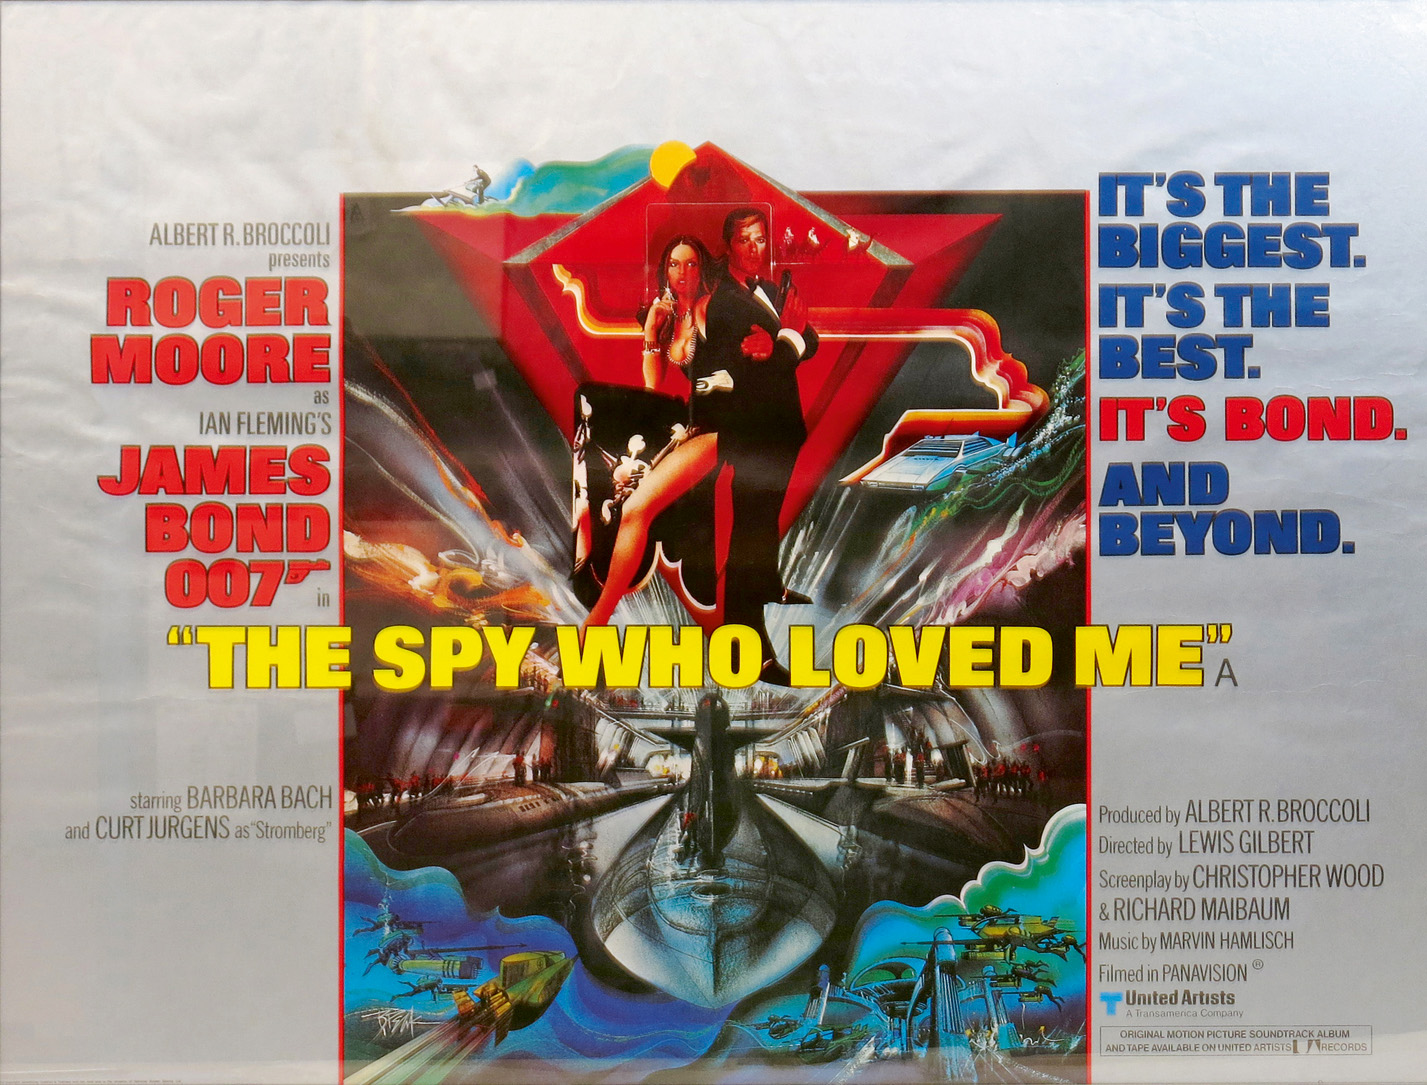 The Spy Who Loved Me a British Quad James Bond film poster, illustrated by Bob Peak, released 1977 Estimate: £250-350